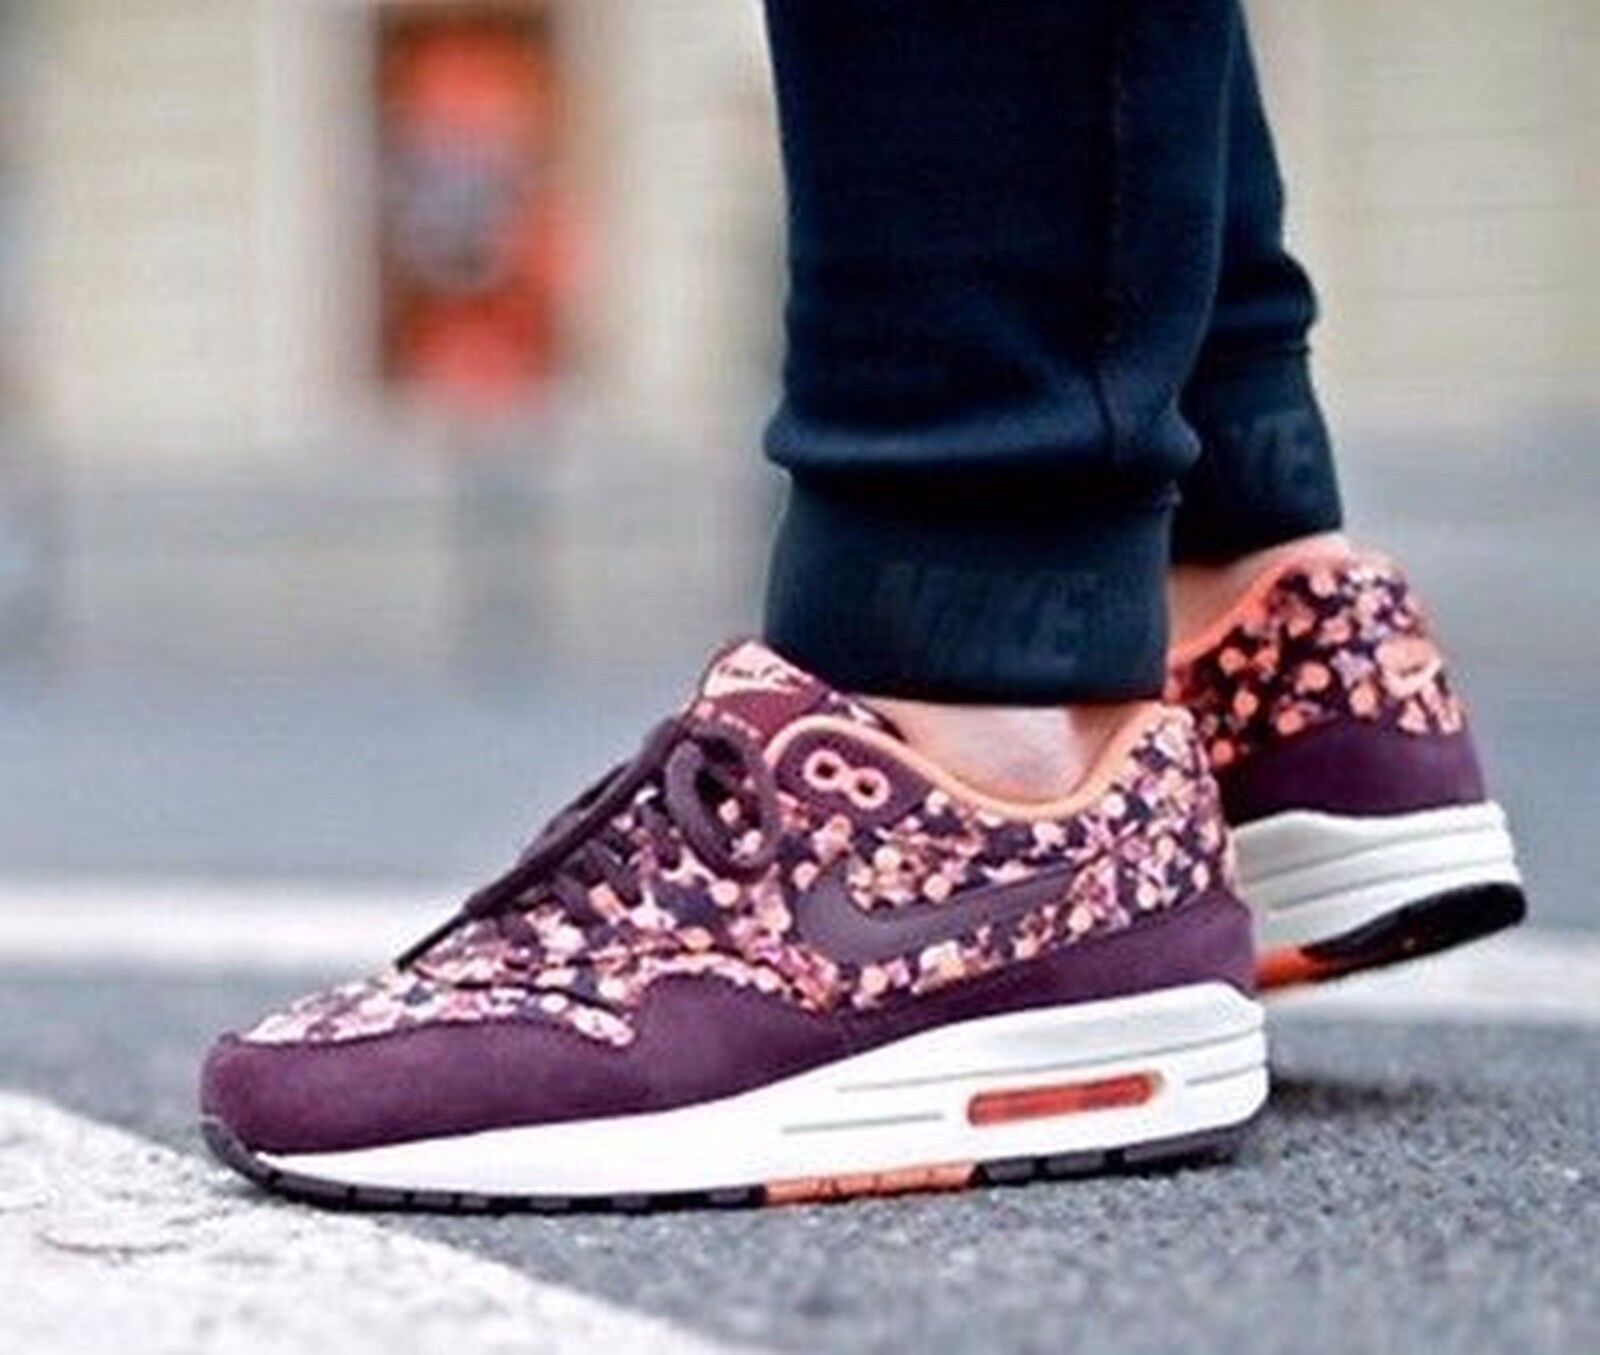 Nike Air Max 1  Liberty Prints QS Deep Burgundy Shoe size 8.5 540855-600